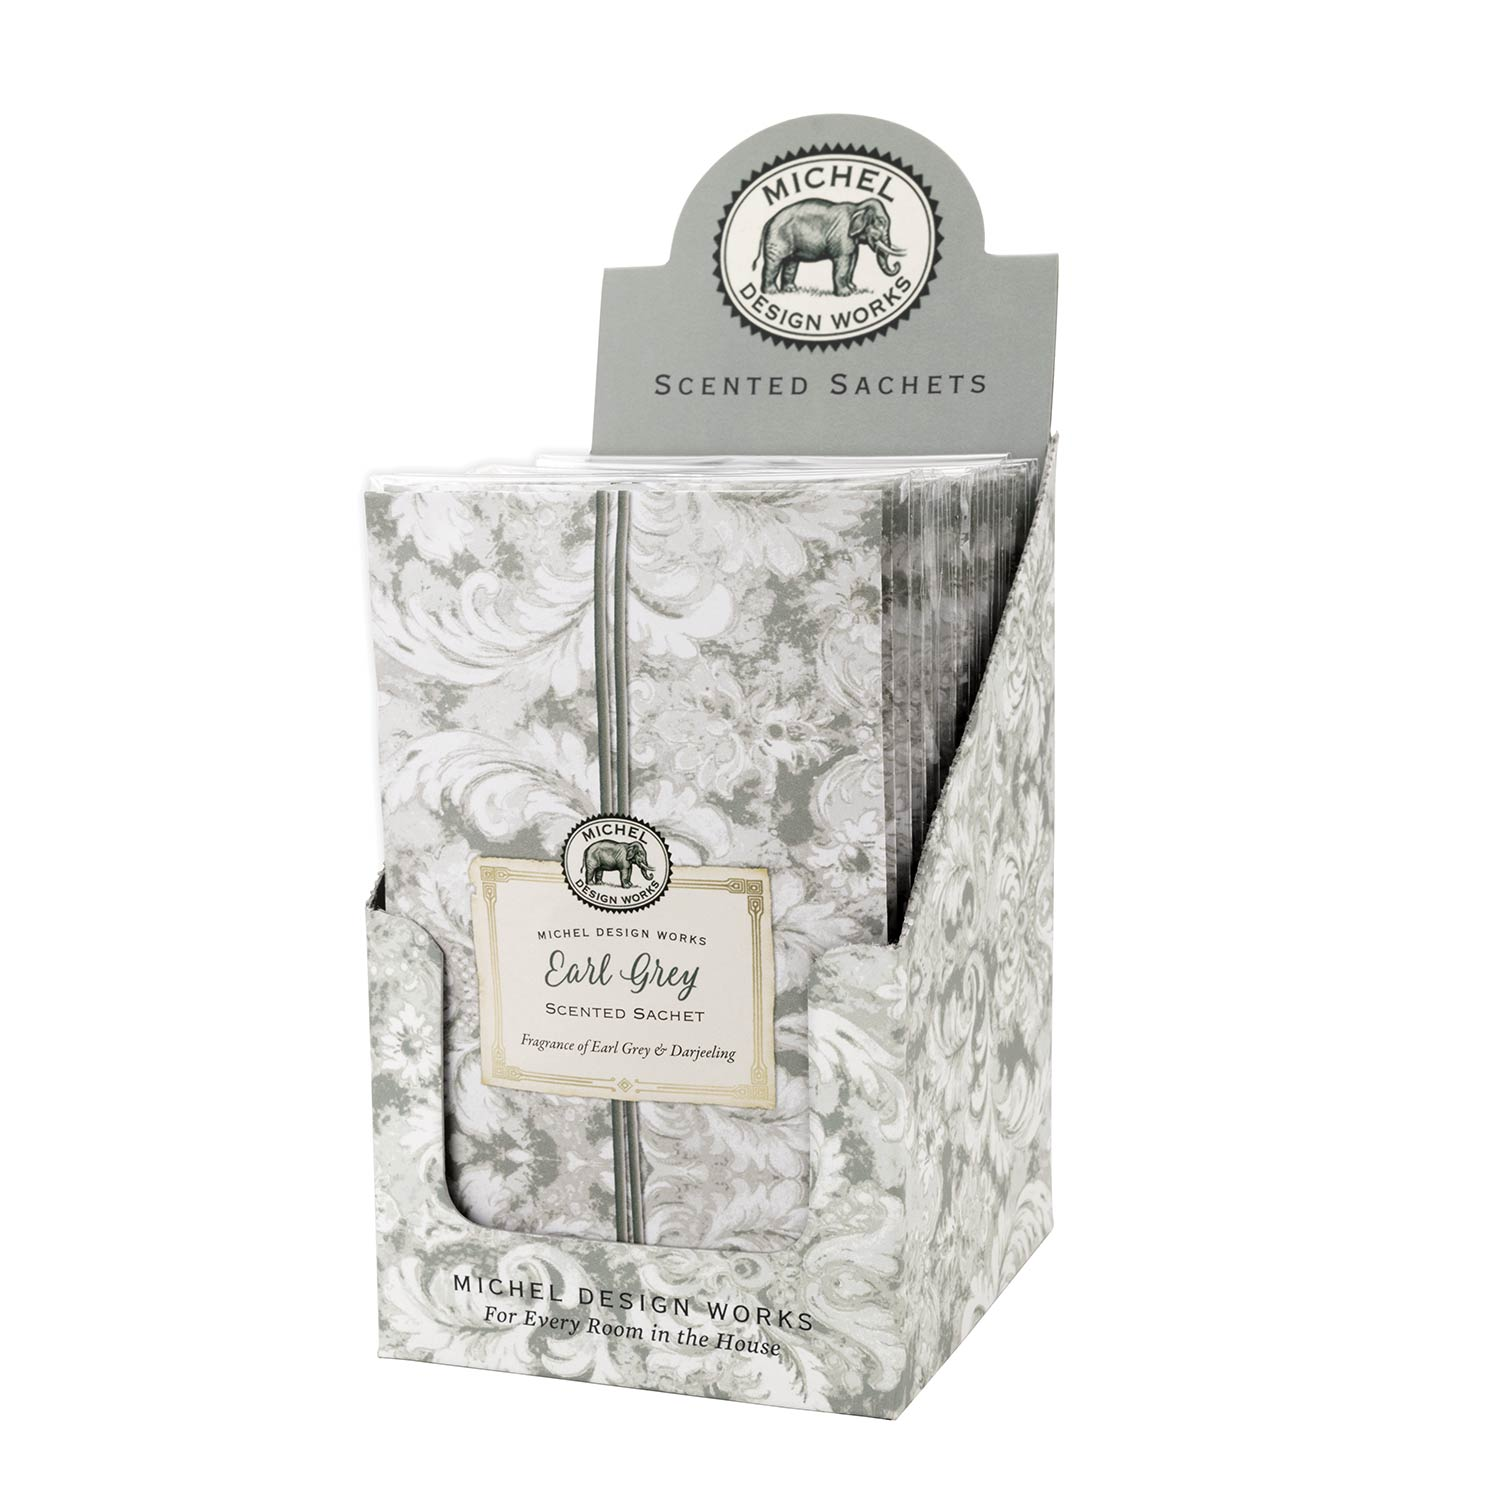 Michel Design Works Scented Sachets Earl Grey